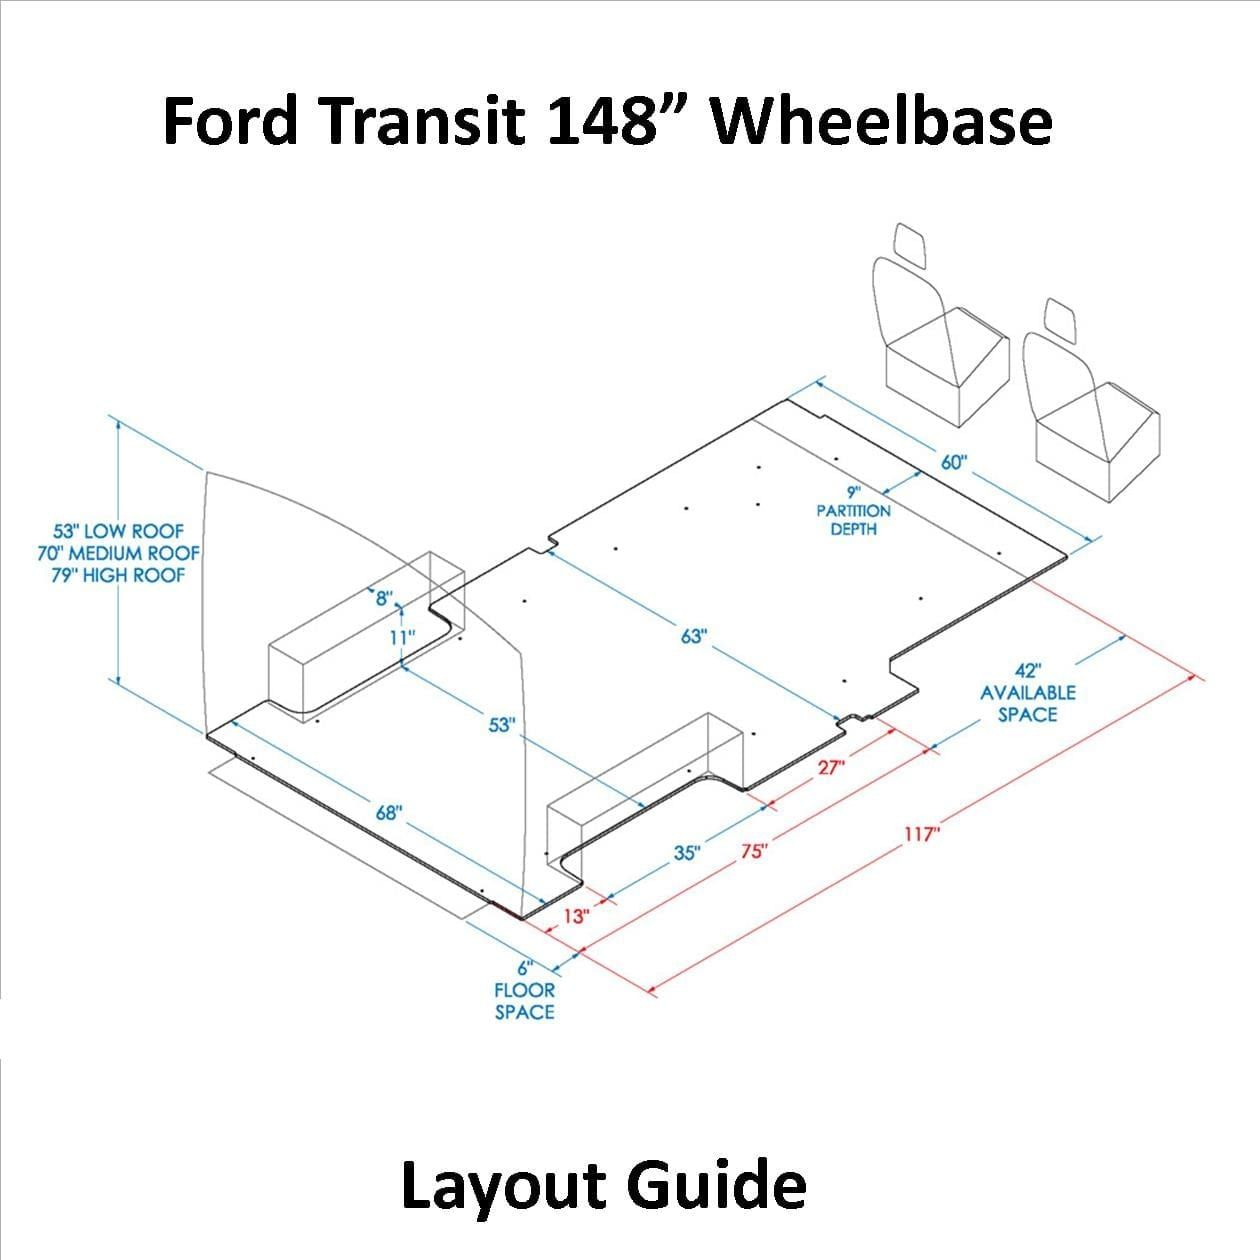 Transit 130 Wb Layout Guide U S Upfitters In 2020 Ford